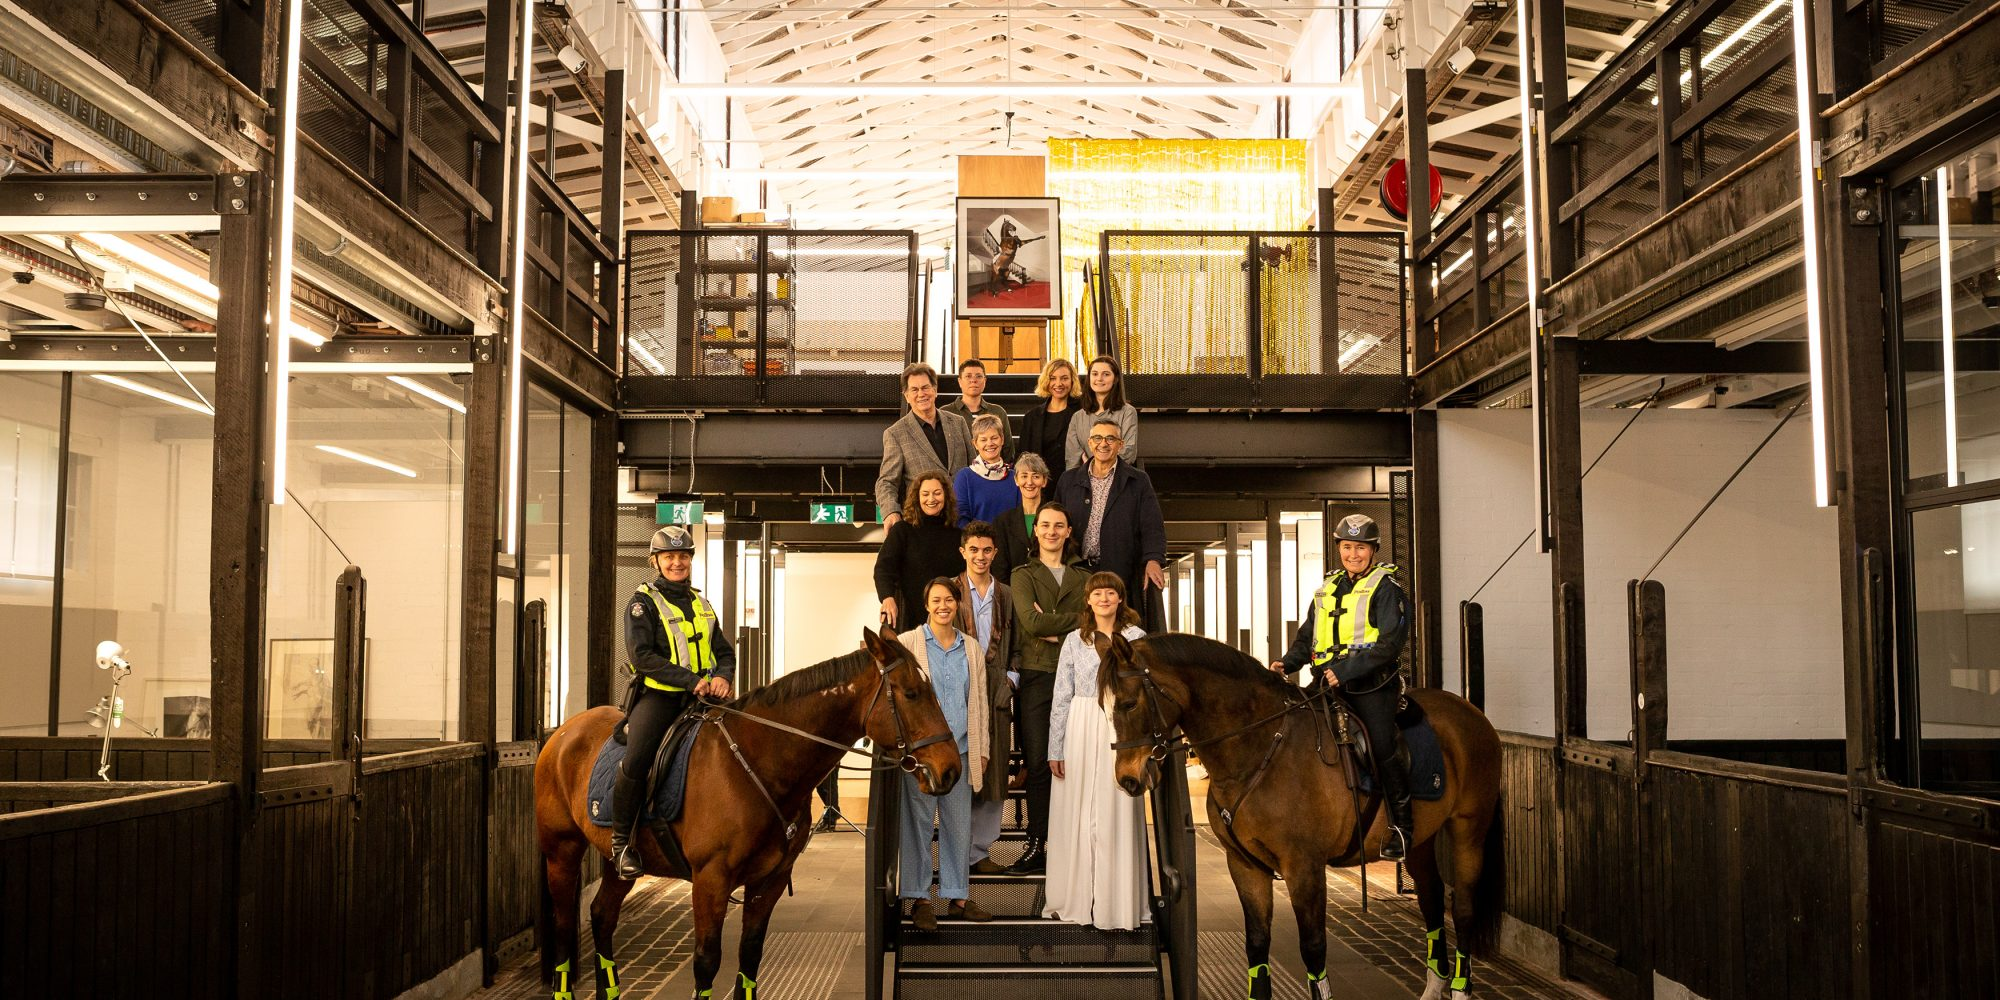 Victoria Police Mounted Branch members Monika Kusnierz (with Bob) and Christine Atherton (with Unity), flank Faculty of Fine Arts and Music students and staff, and architect Kerstin Thompson, in the refurbished Stables building. By Sav Schulman.